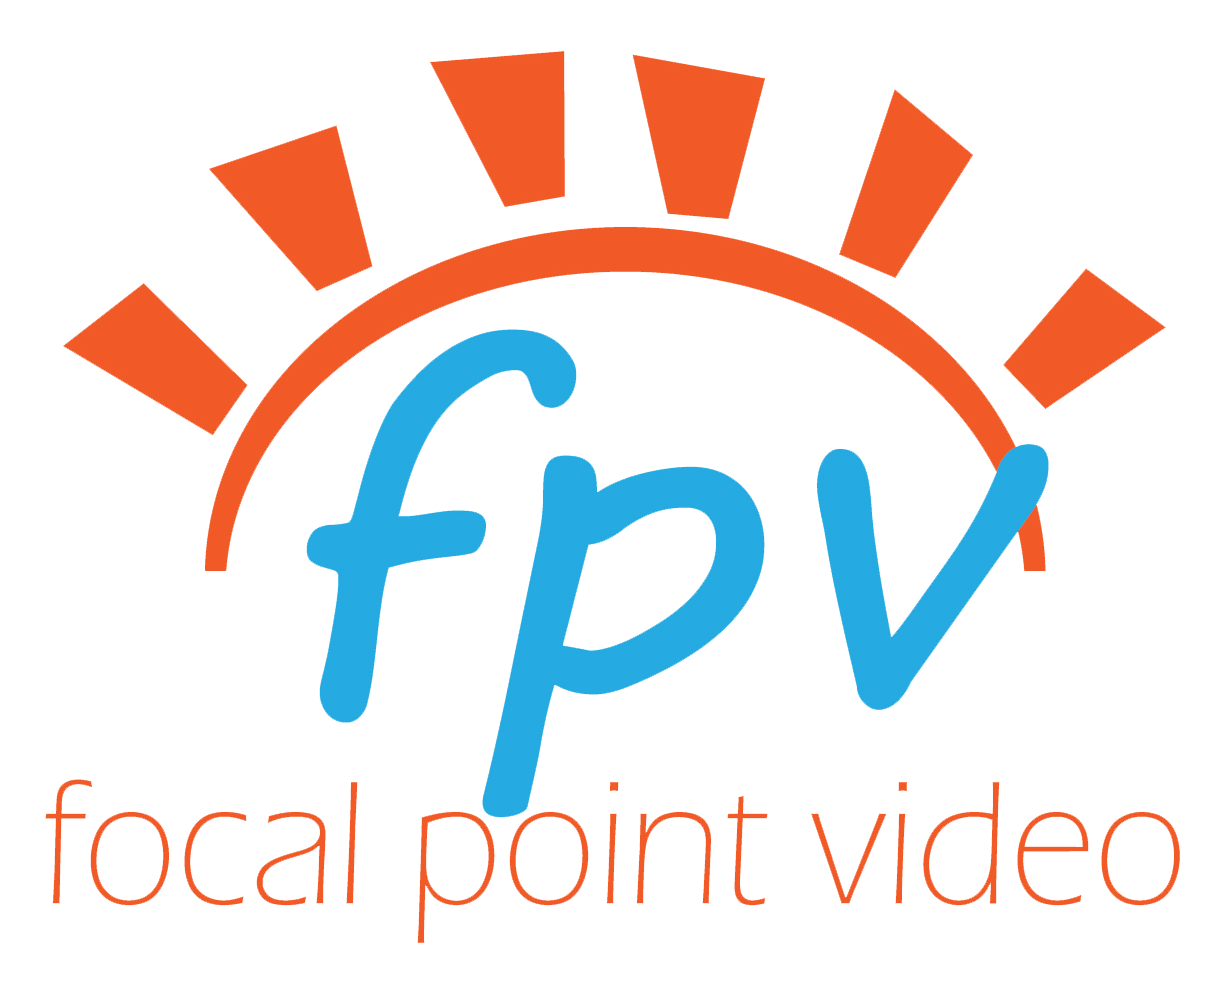 Focal Point Video